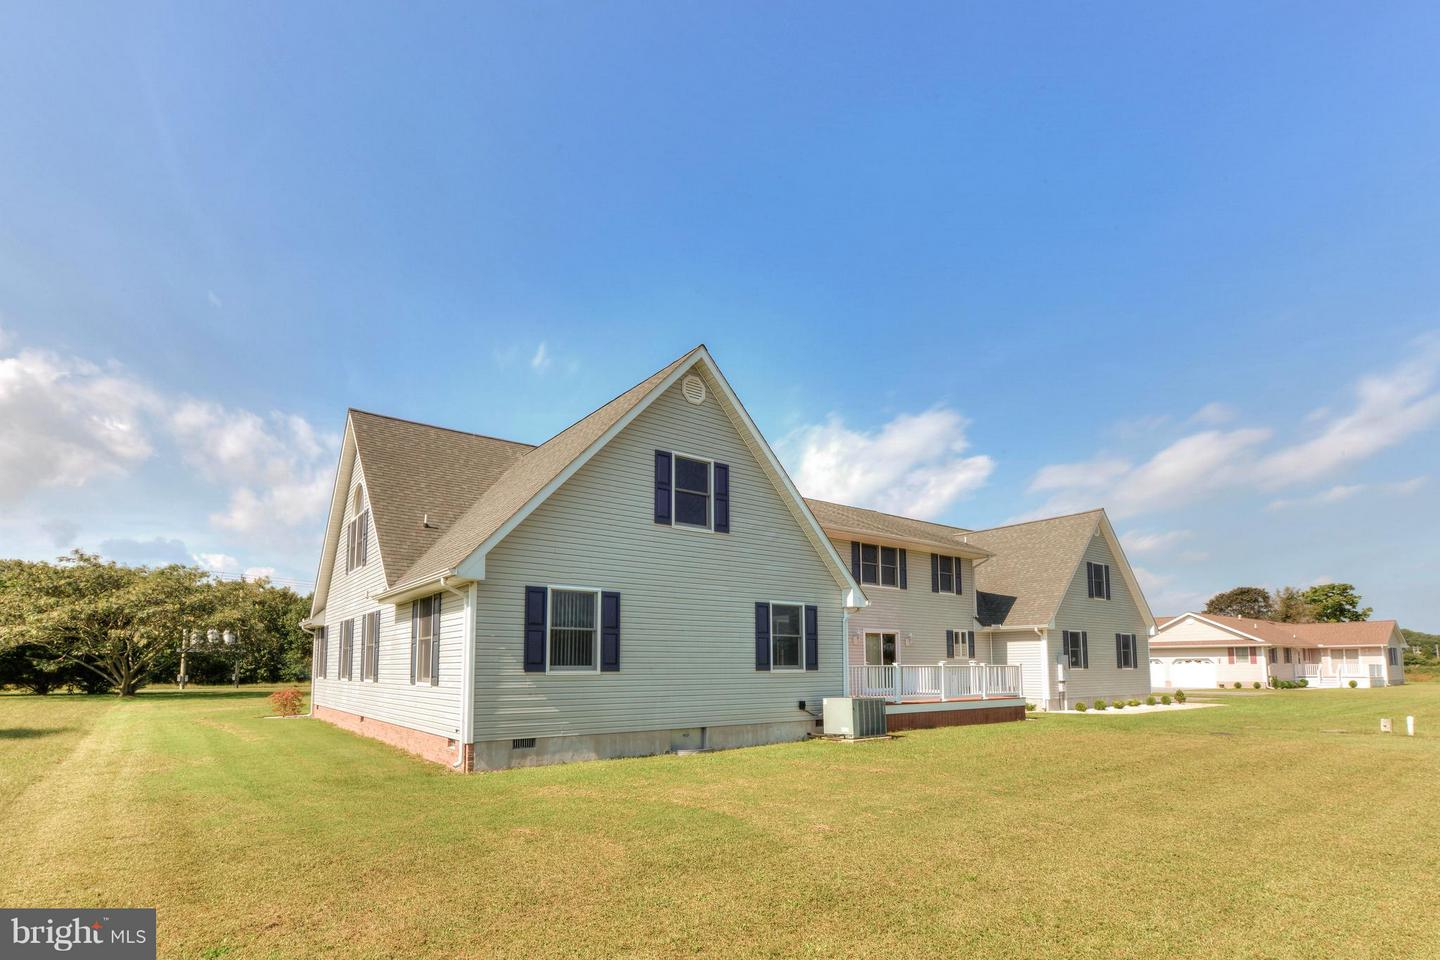 1008261950-300987893448-2018-11-07-19-39-00 22703 Hurdle Ditch Rd | Harbeson, DE Real Estate For Sale | MLS# 1008261950  - Jack Lingo REALTOR